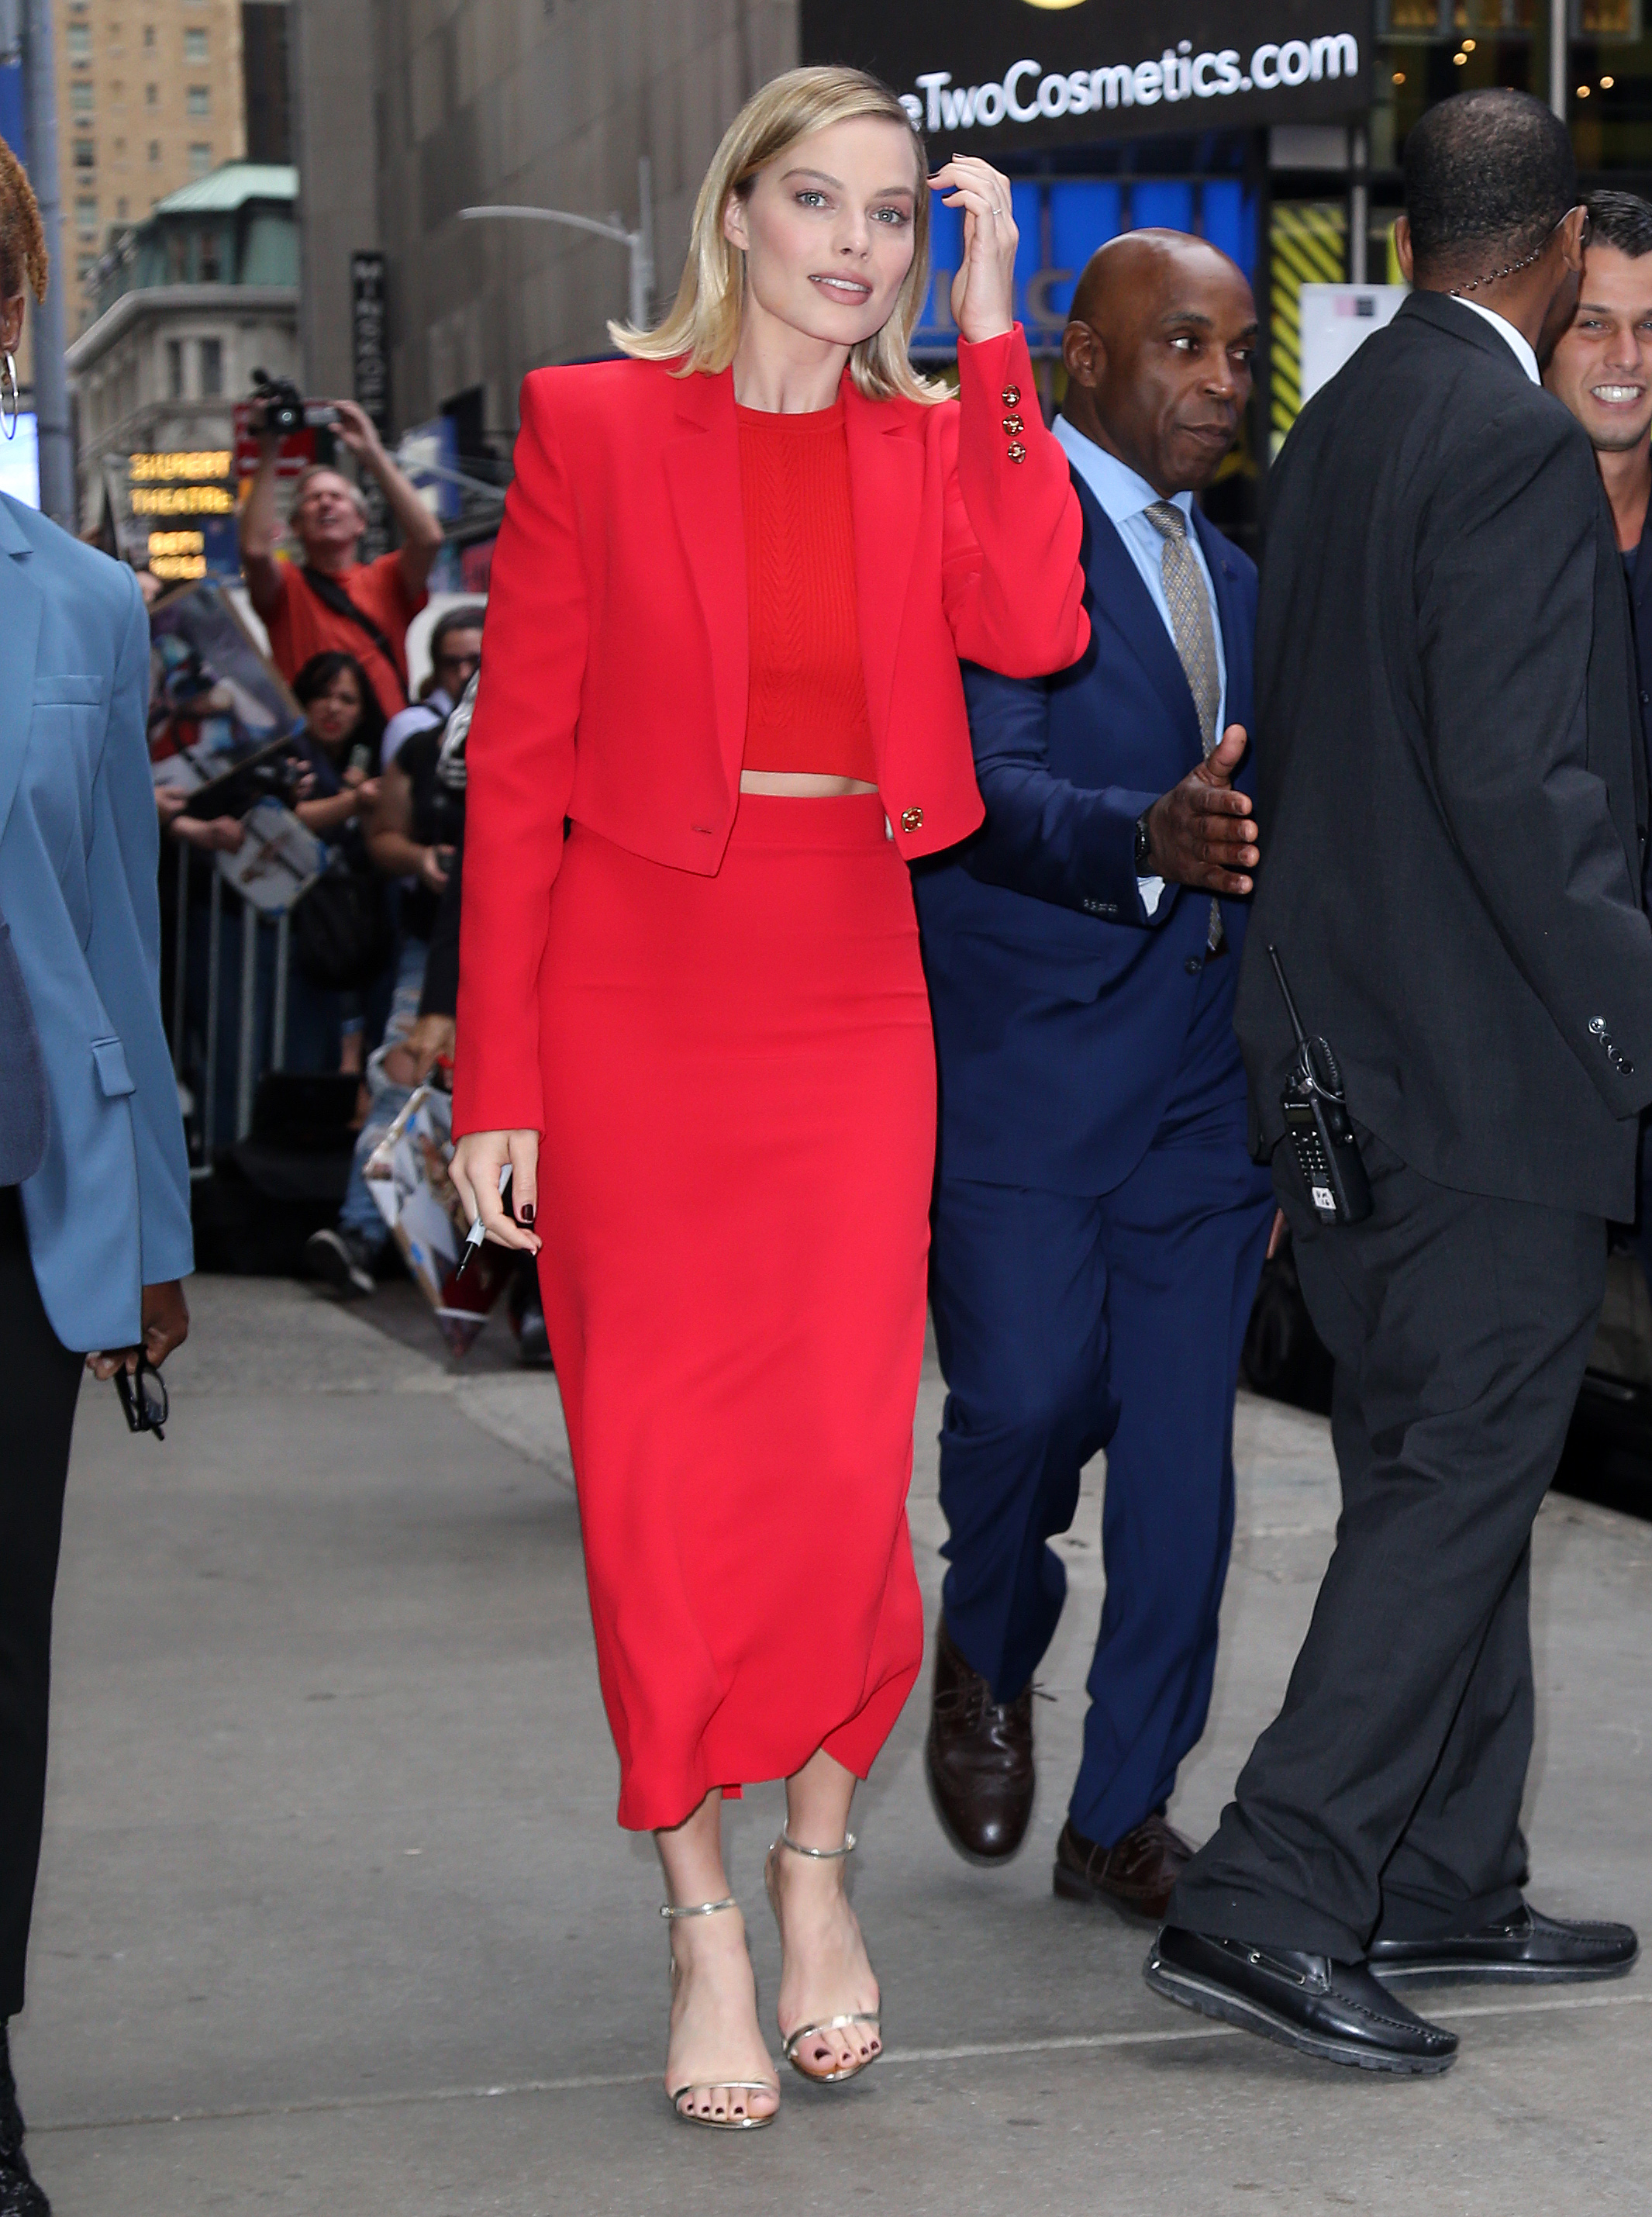 Margot Robbie leaves 'Good Morning America' wearing a red dress in New York City, New York. <P> Pictured: Margot Robbie <B>Ref: SPL1599762  111017  </B><BR/> Picture by: Splash News<BR/> </P><P> <B>Splash News and Pictures</B><BR/> Los Angeles:310-821-2666<BR/> New York:212-619-2666<BR/> London:870-934-2666<BR/> <span id=